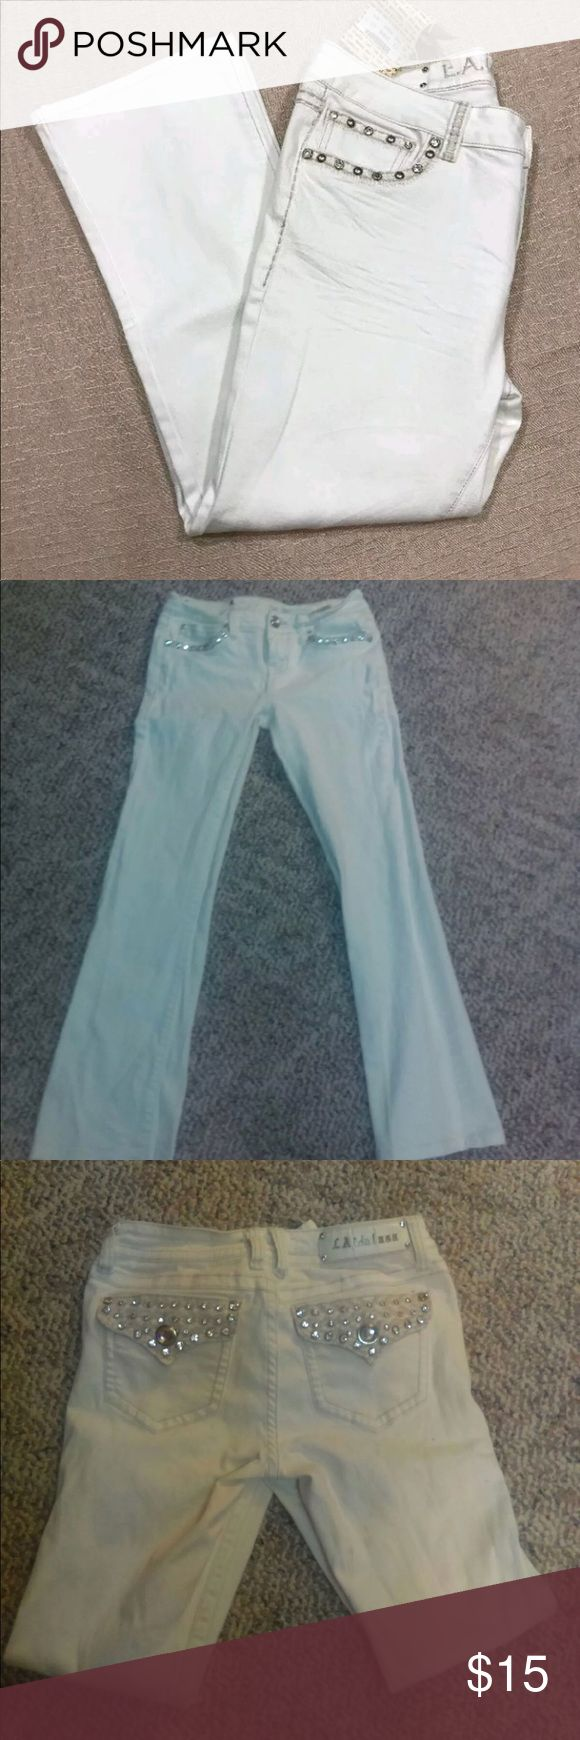 NWOT White La Idol BootCut Jeans Size 7 These LA idols were too small for me I took the tag off as I saw a small stain and washed it out the last picture reflects the faint stain  . You can't really see it the price reflects this LA IDOL Jeans Boot Cut